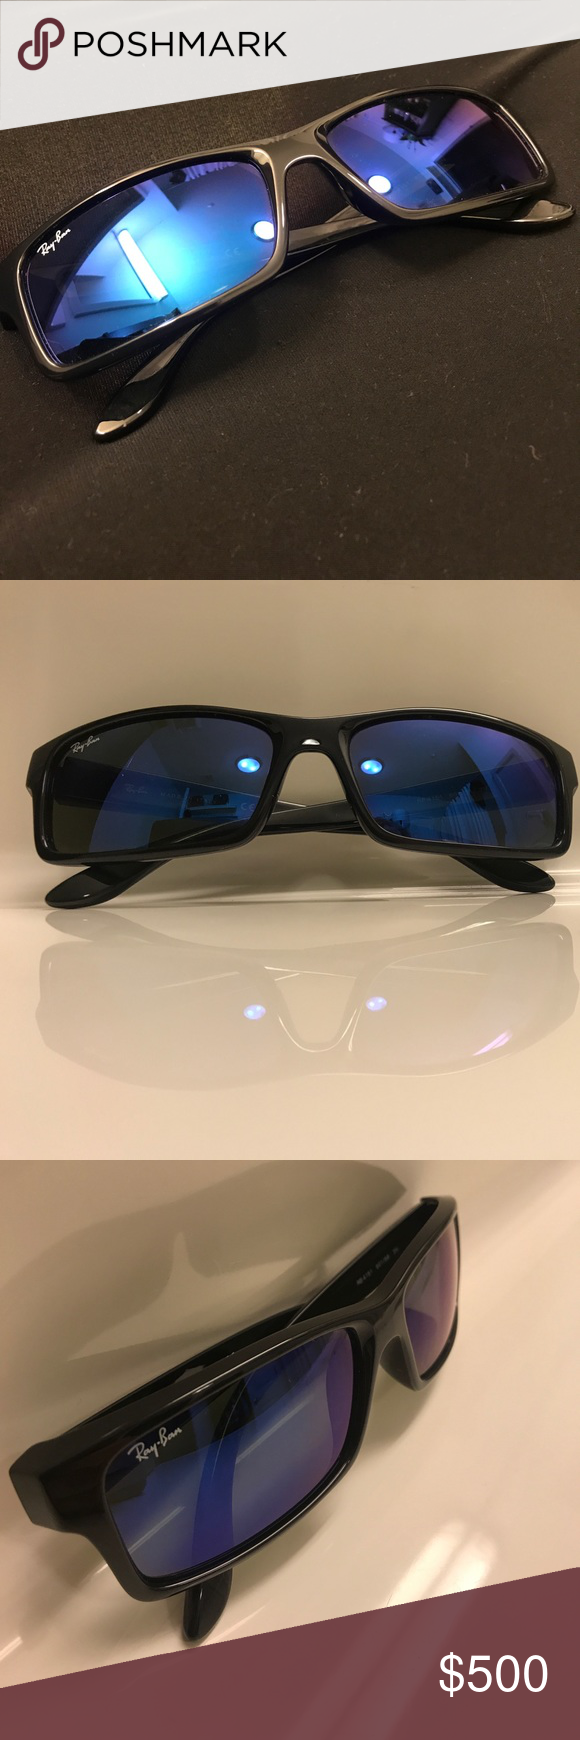 437f6ff3f8e Ray Ban RB4151 Men s Sunglasses Ray Ban RB4151 Men s Sunglasses. 601 68 3N. Blue  Metallic Lenses. Shiny Black Frame. Doesn t come with case. Made in Italy.